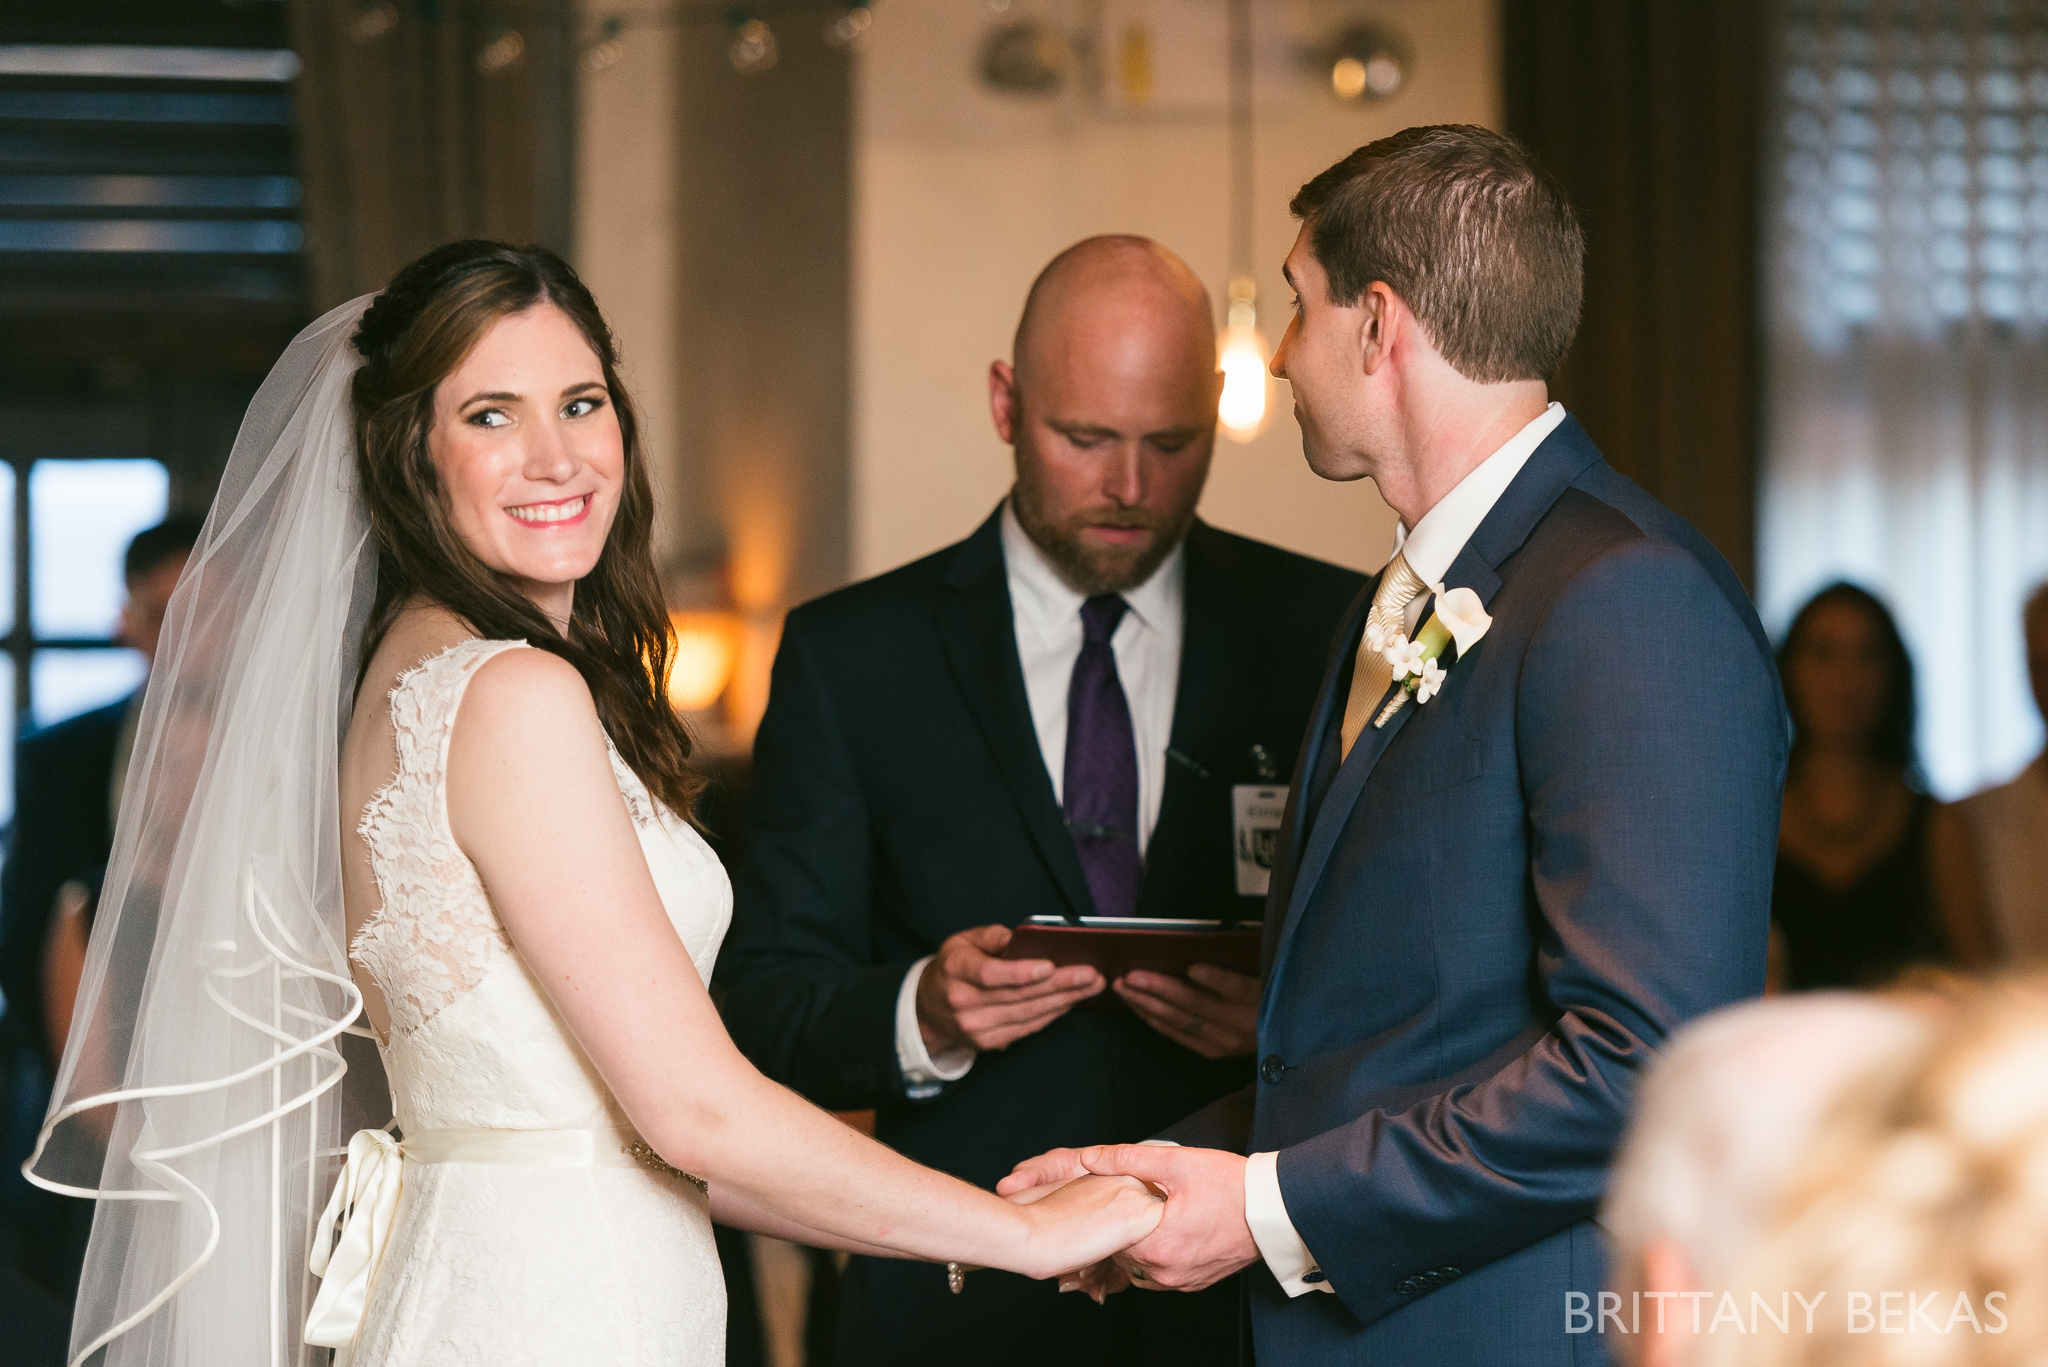 Chicago Wedding Photos Osteria Via Stato - Brittany Bekas Photography_0035